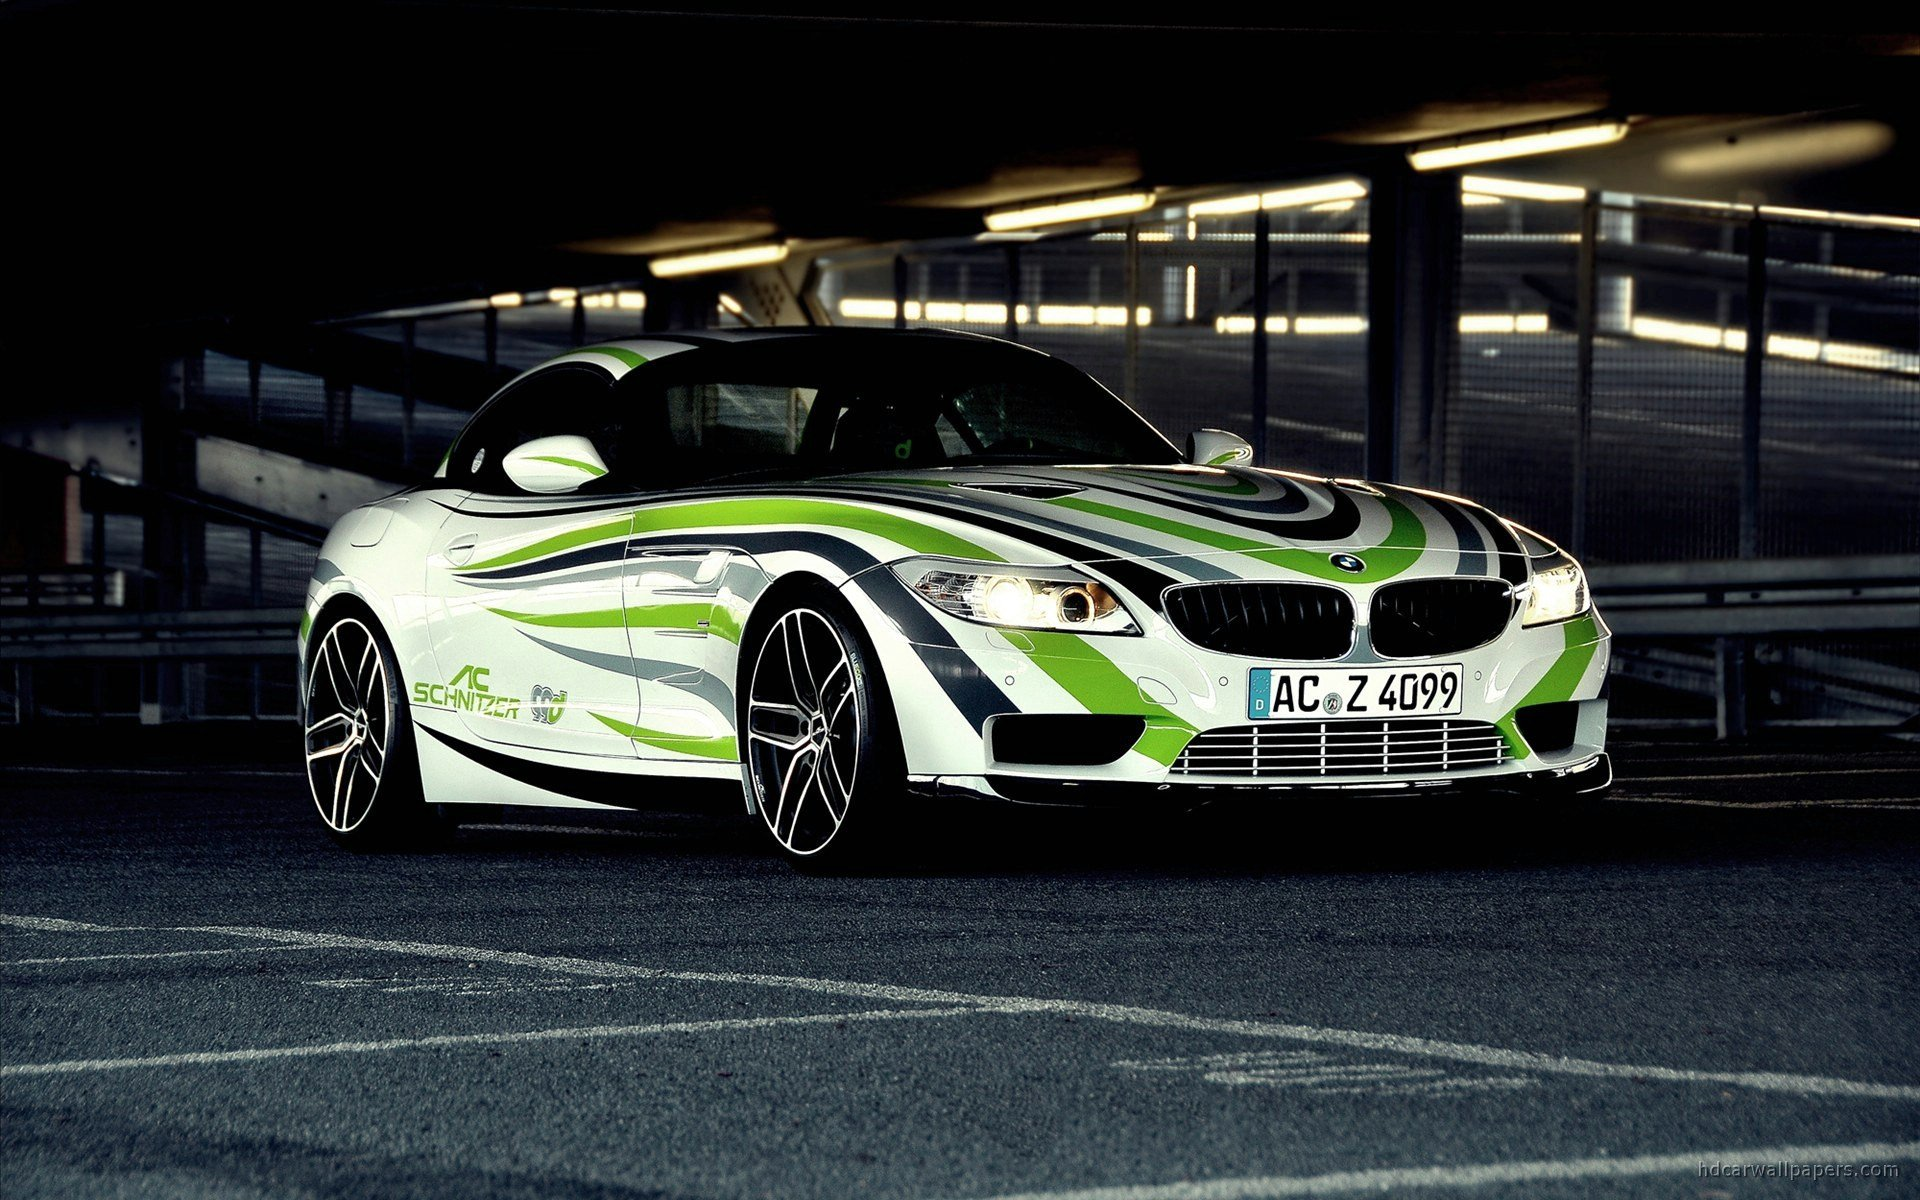 Latest Best Bmw Wallpapers For Desktop Tablets In Hd For Download Free Download